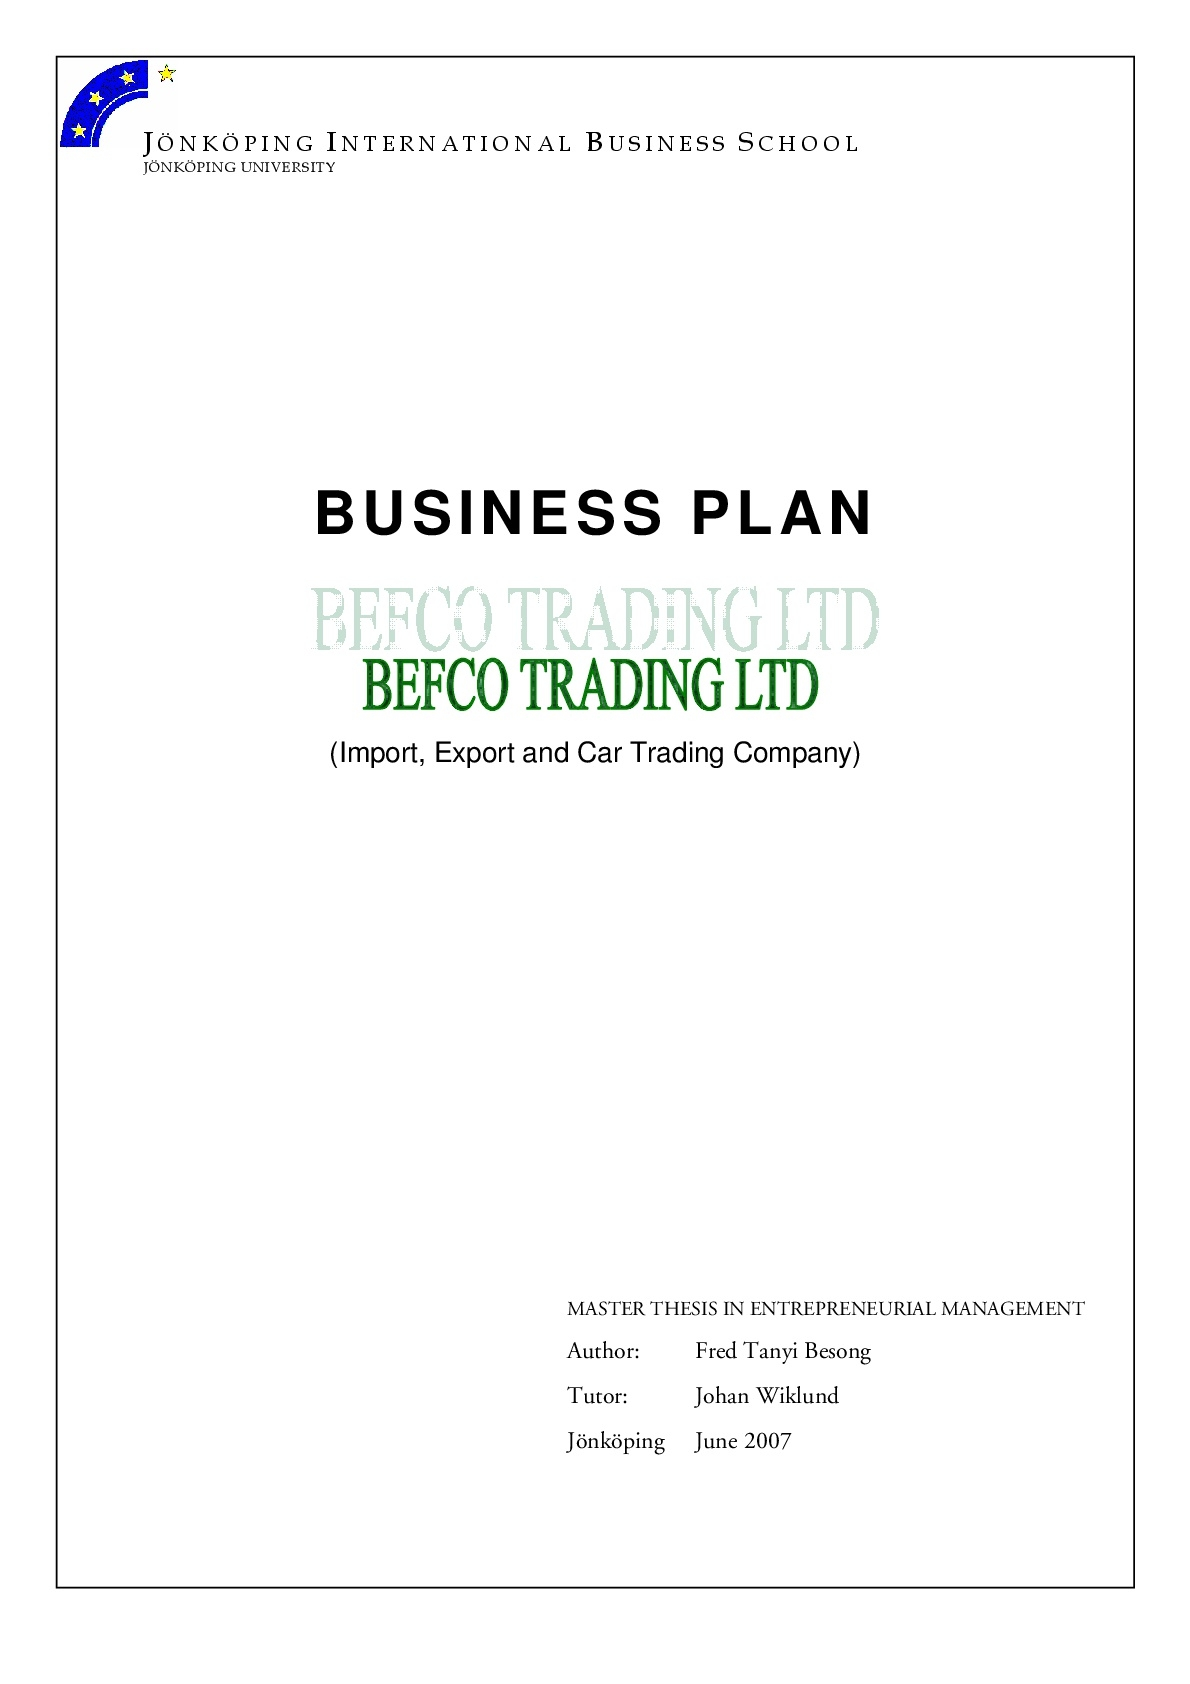 import export and car trading business plan 002